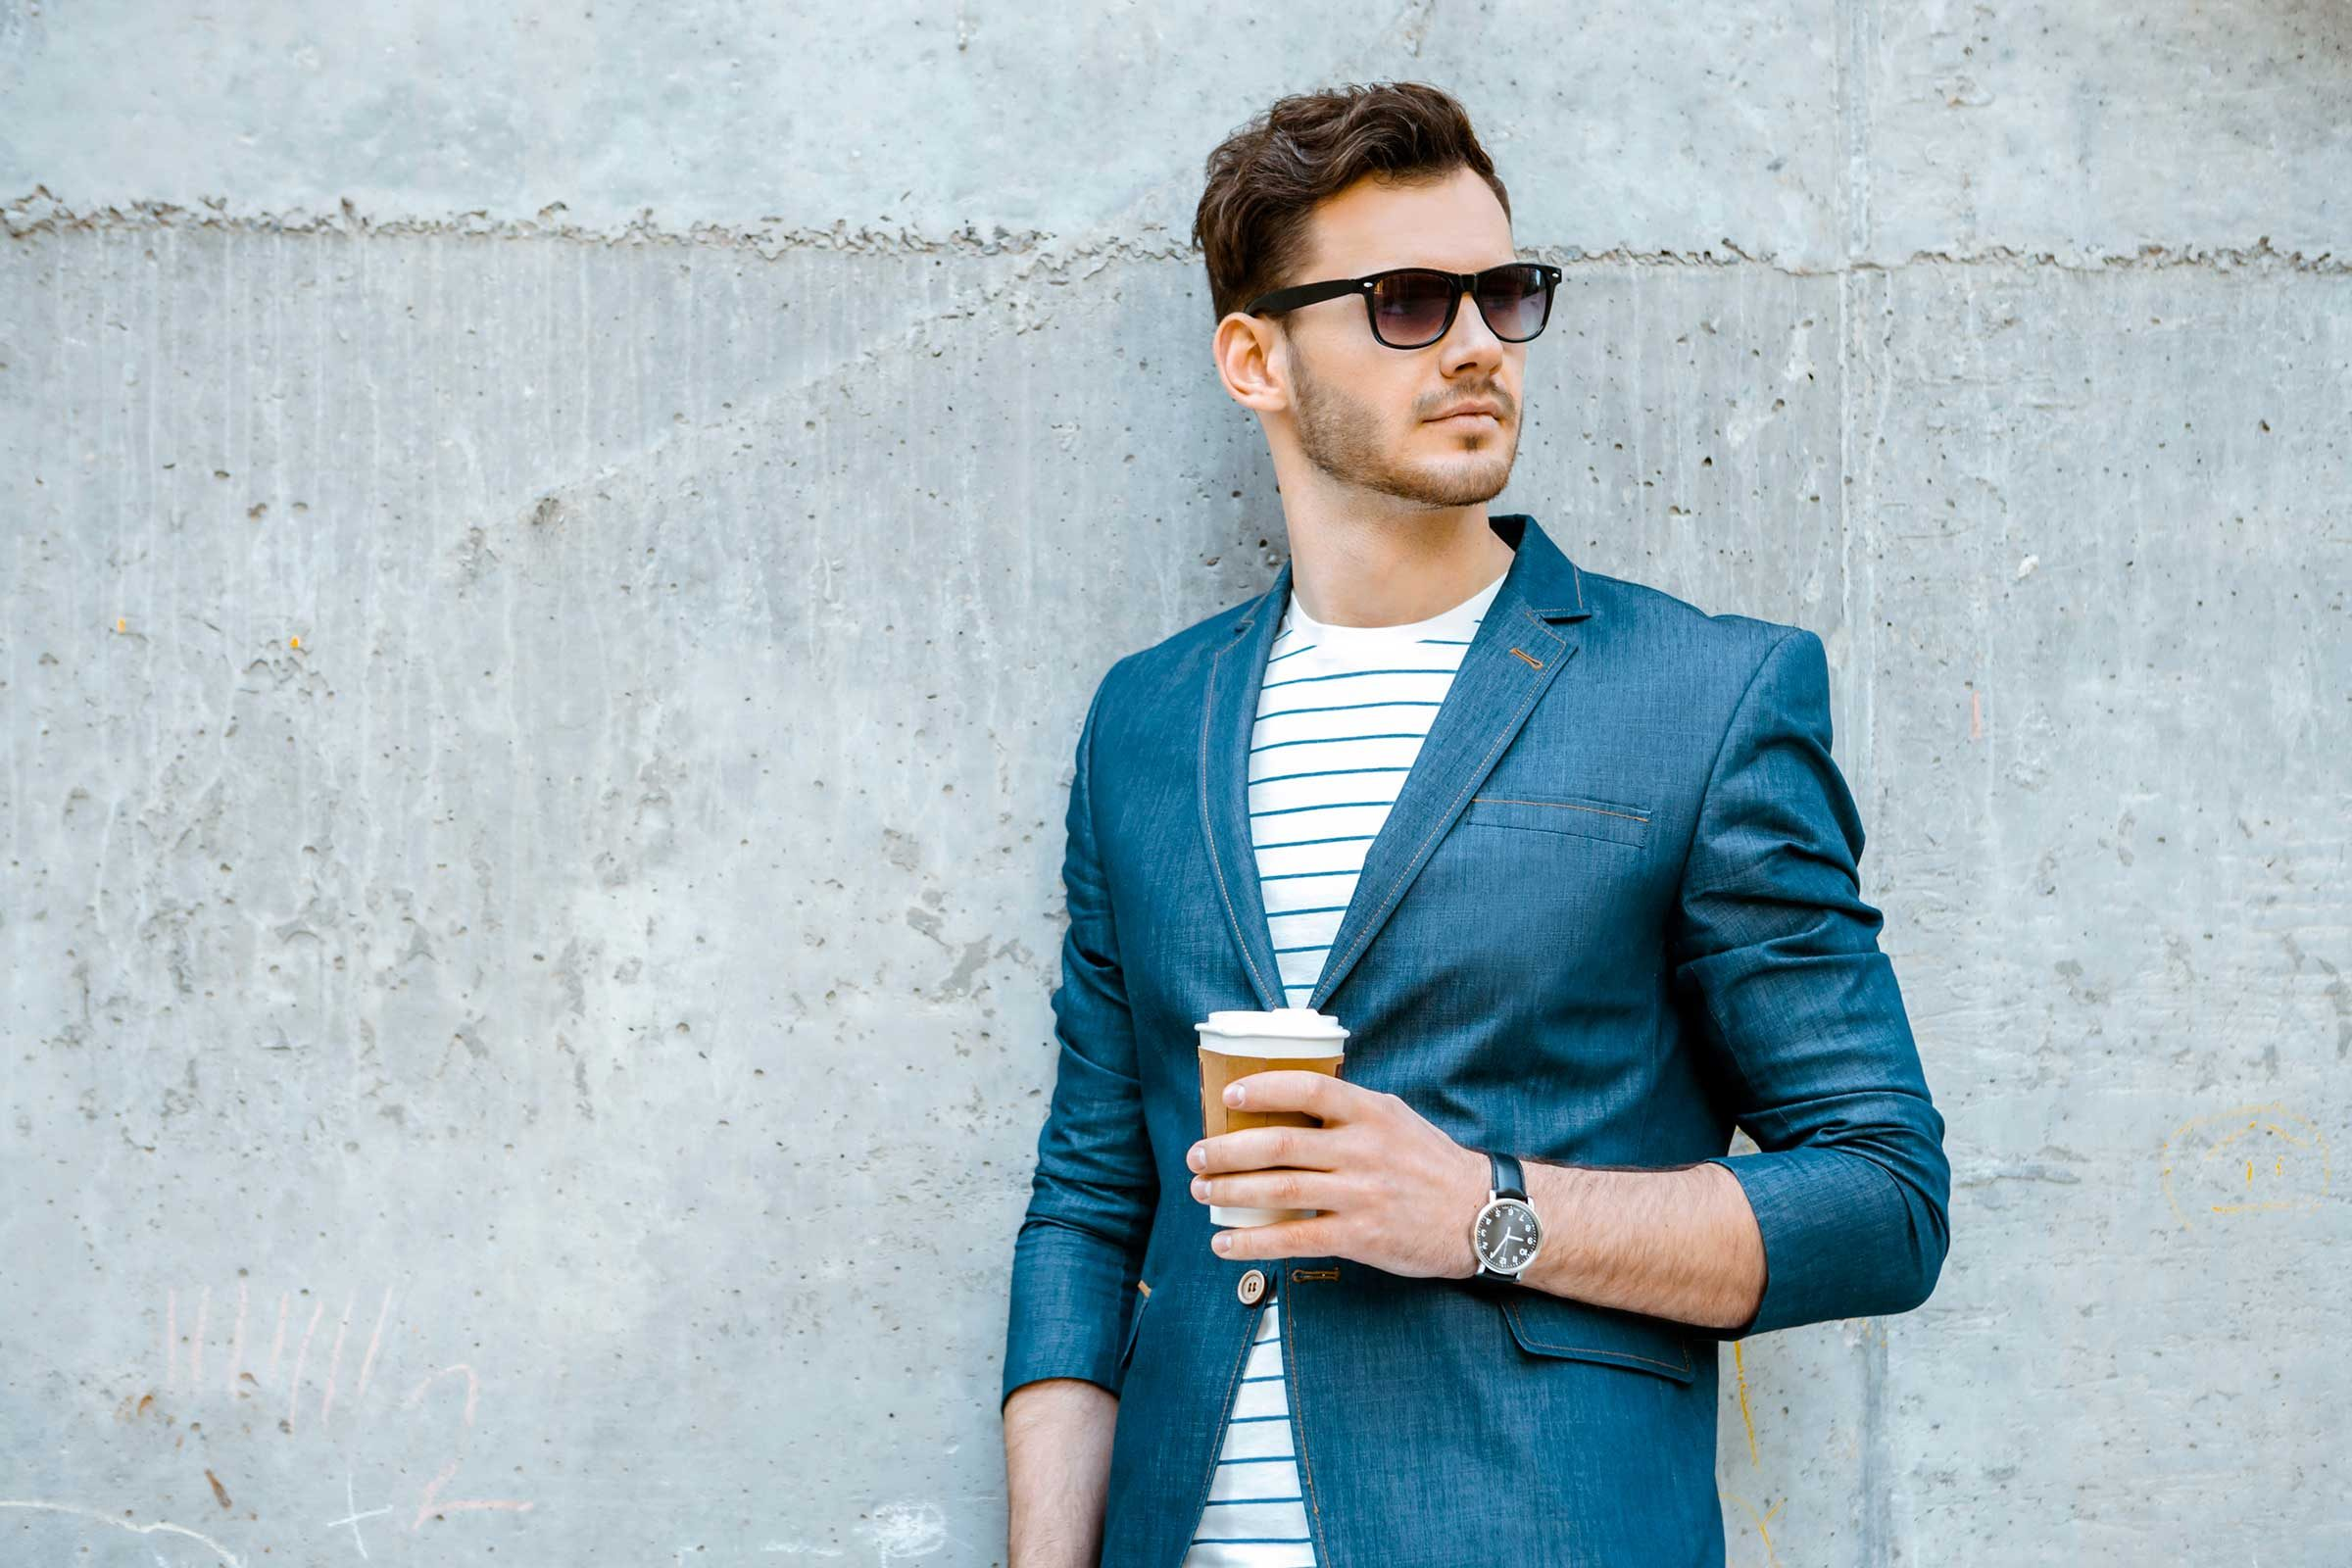 man wearing sunglasses and holding cup of coffee